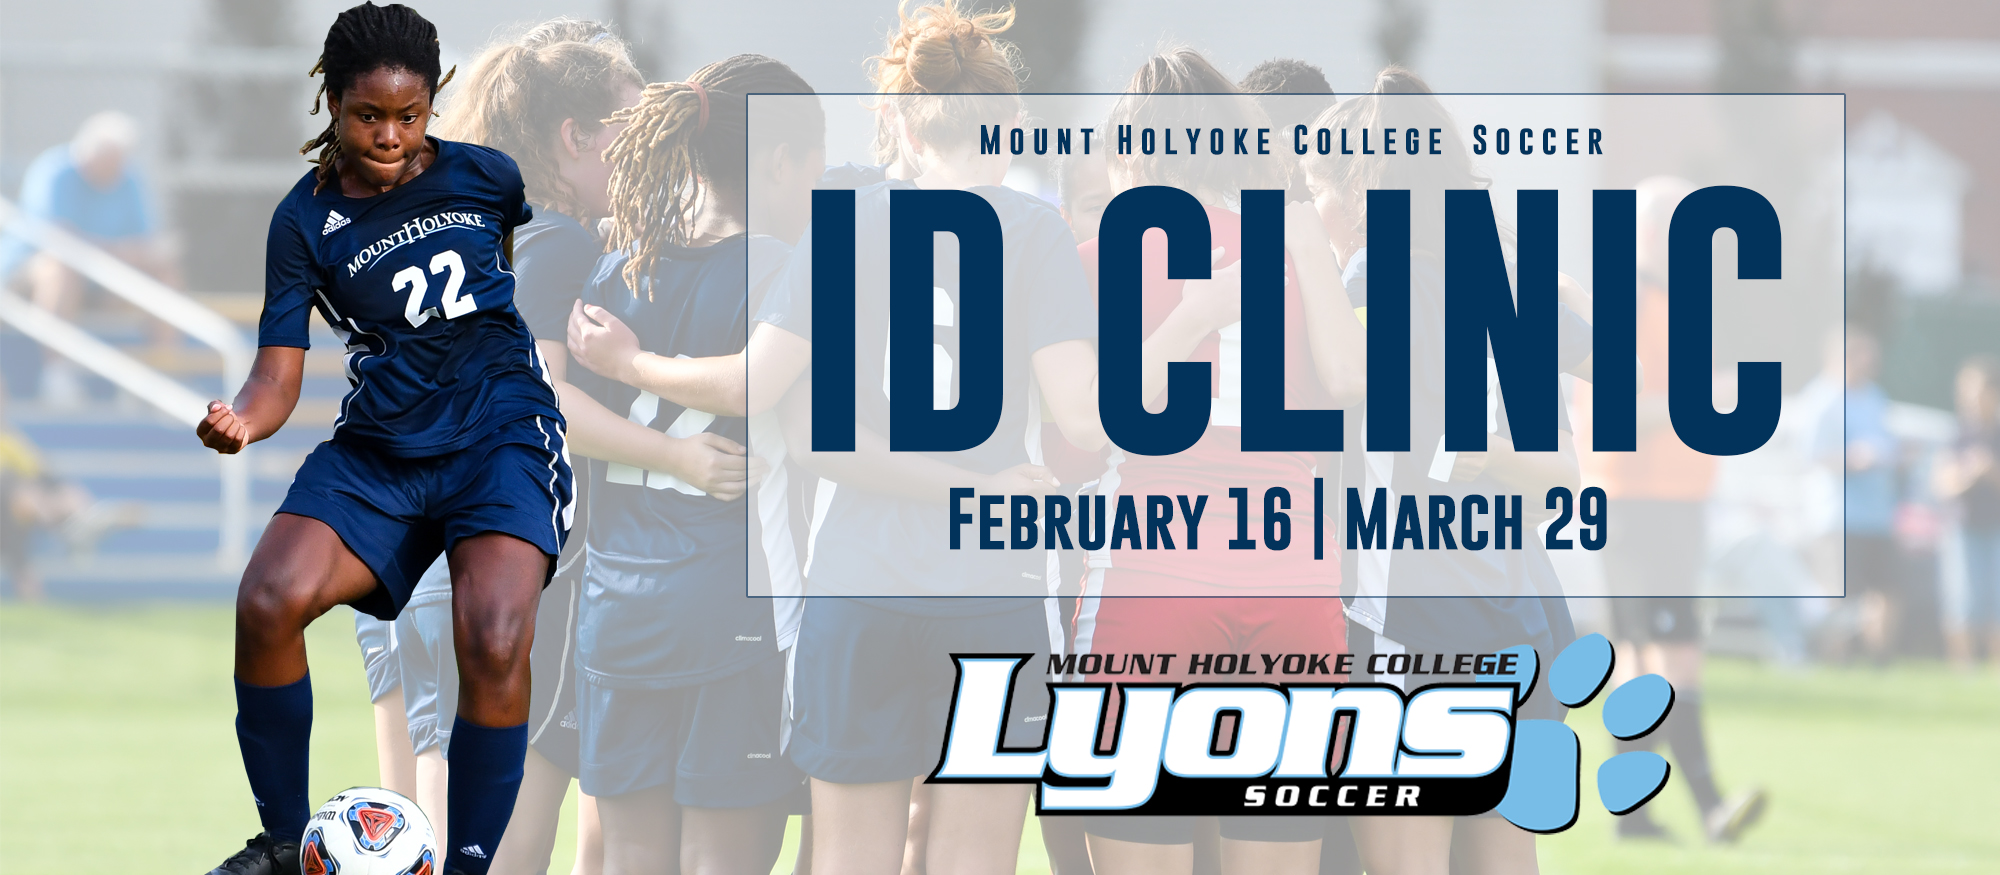 Soccer to Host Girls' ID Clinics on February 16 and March 29